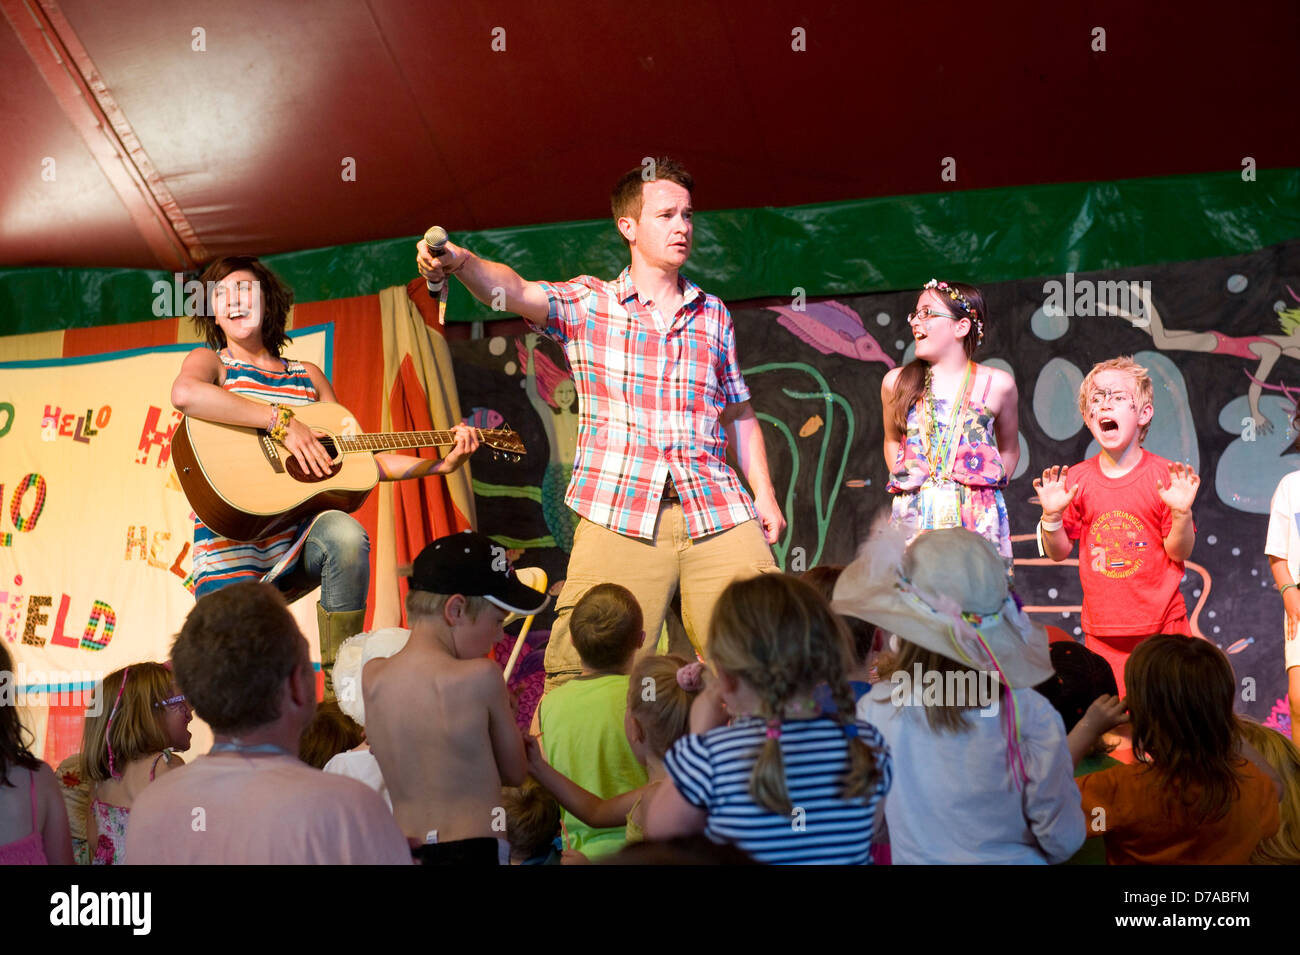 Cbeebies presenters performing in the main tent of the kids field at Glastonbury festival  sc 1 st  Alamy & Cbeebies presenters performing in the main tent of the kids field ...